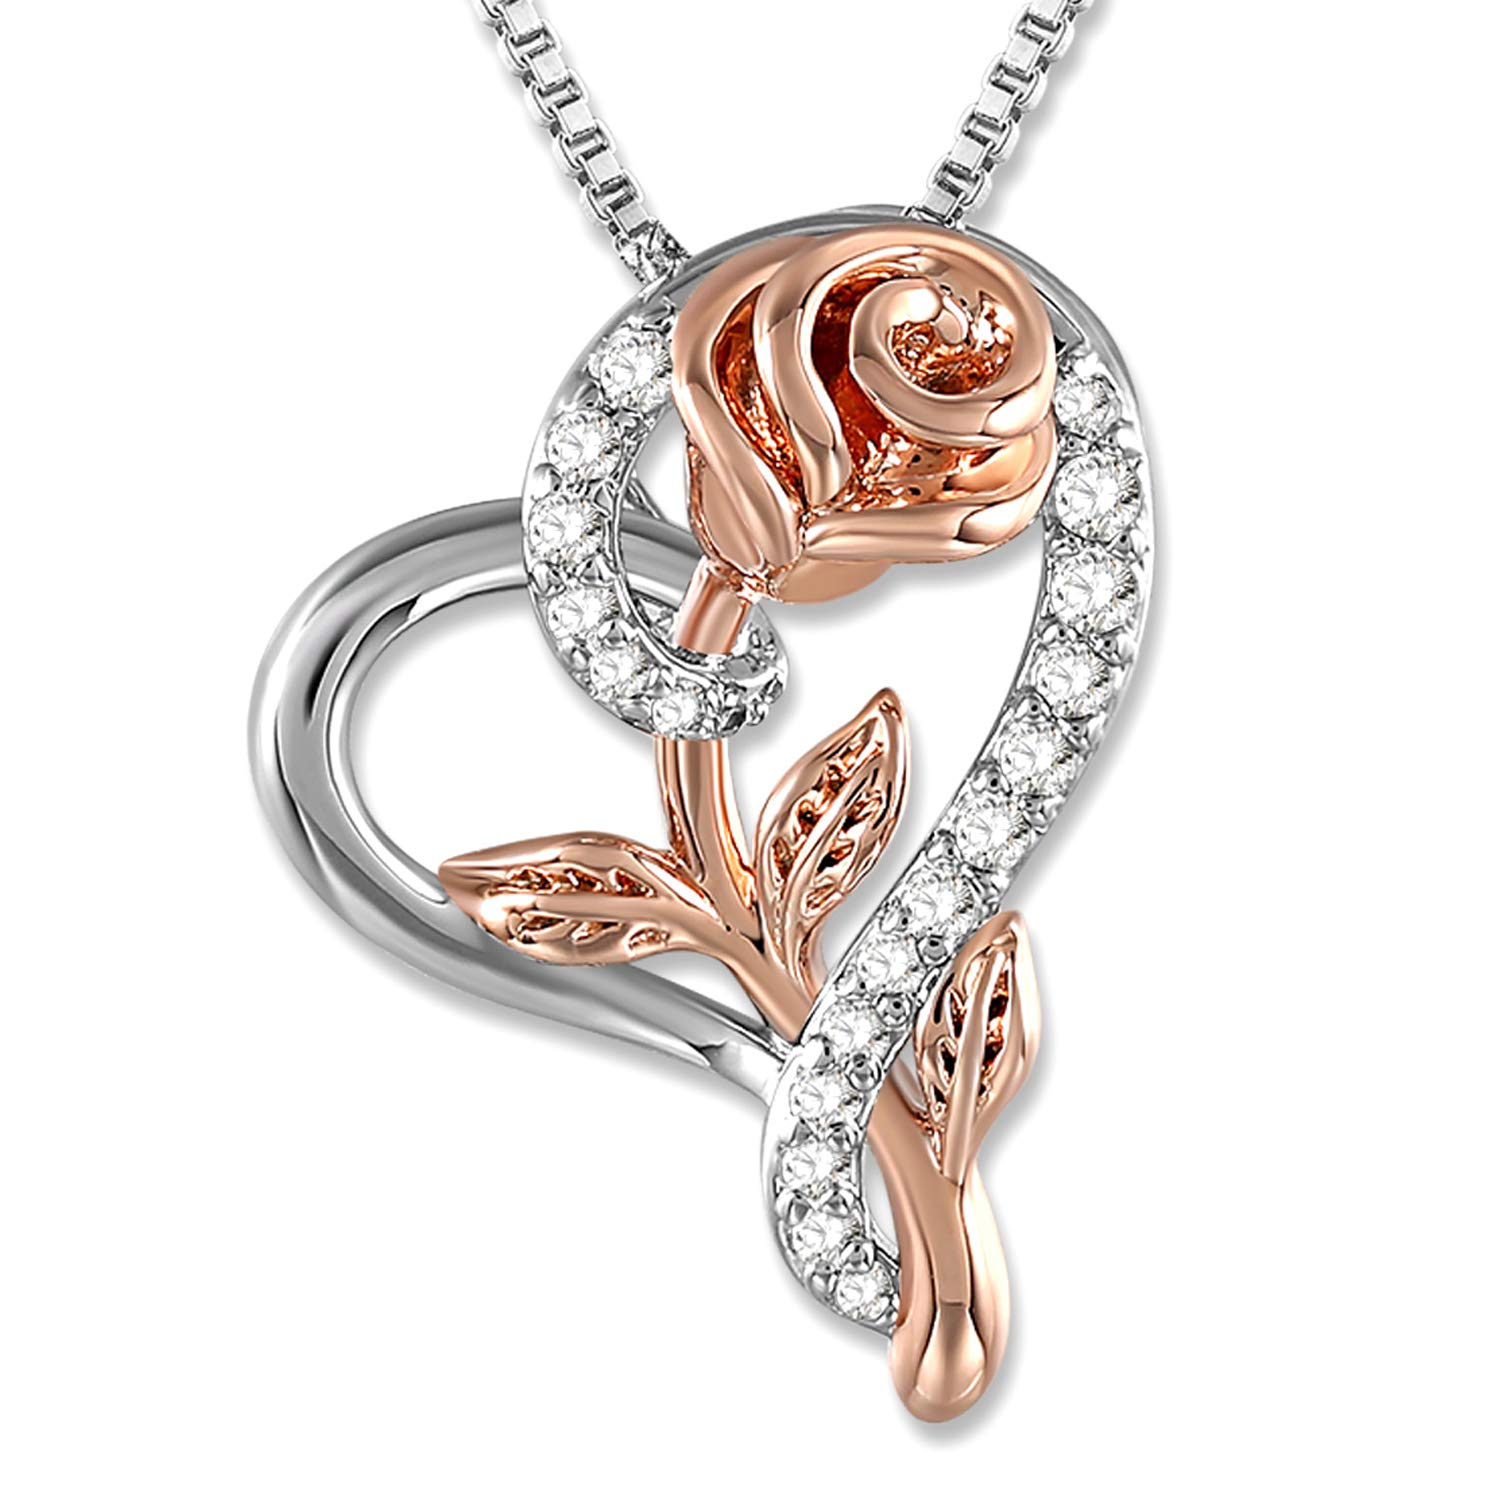 Rose Necklace for Women 5A Cubic Zirconia Love Heart Pendant Necklace Jewelry with Gift Box